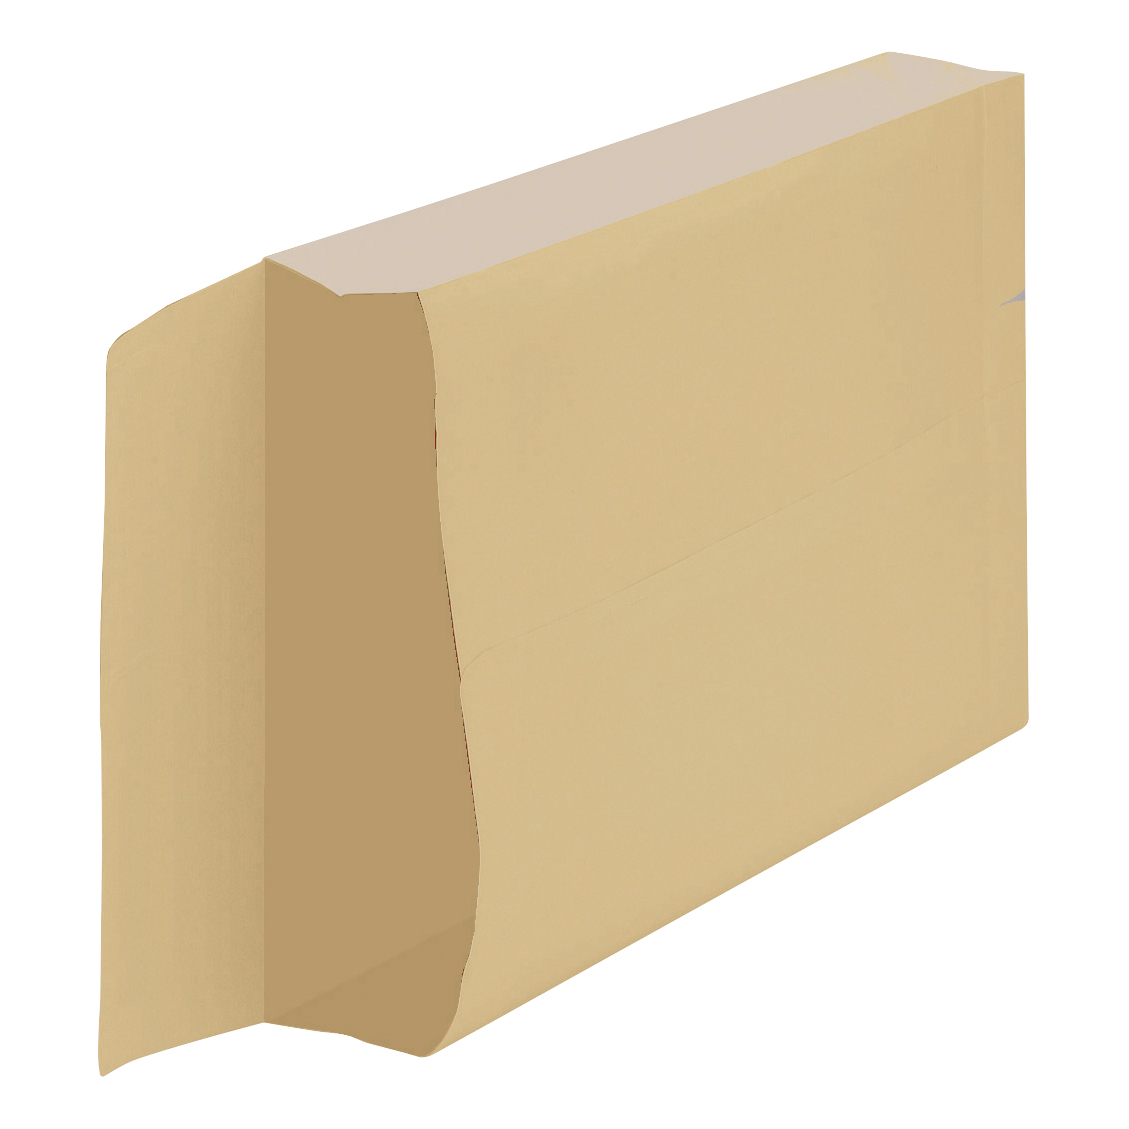 New Guardian Armour Envelopes 330x260mm Gusset 50mm Peel&Seal 130gsm Kraft Manilla Ref J28203 Pack 100